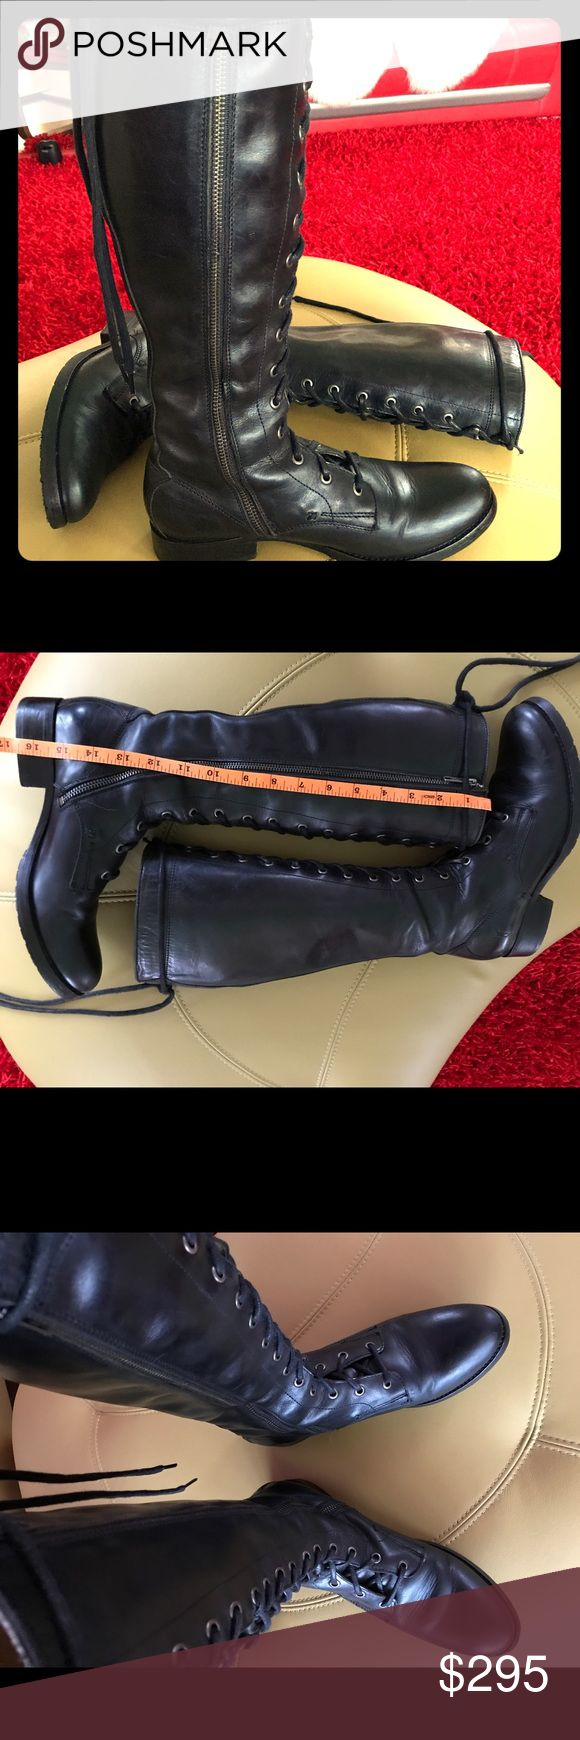 """Tall Frye Melissa Boots, Size 8.5US Women Great pair of Frye Tall Lace Up Melissa Boots! In pre-owned condition with minor blemishes. 16.5"""" tall. They sell for $458 new. Make me an offer. Frye Shoes Lace Up Boots"""